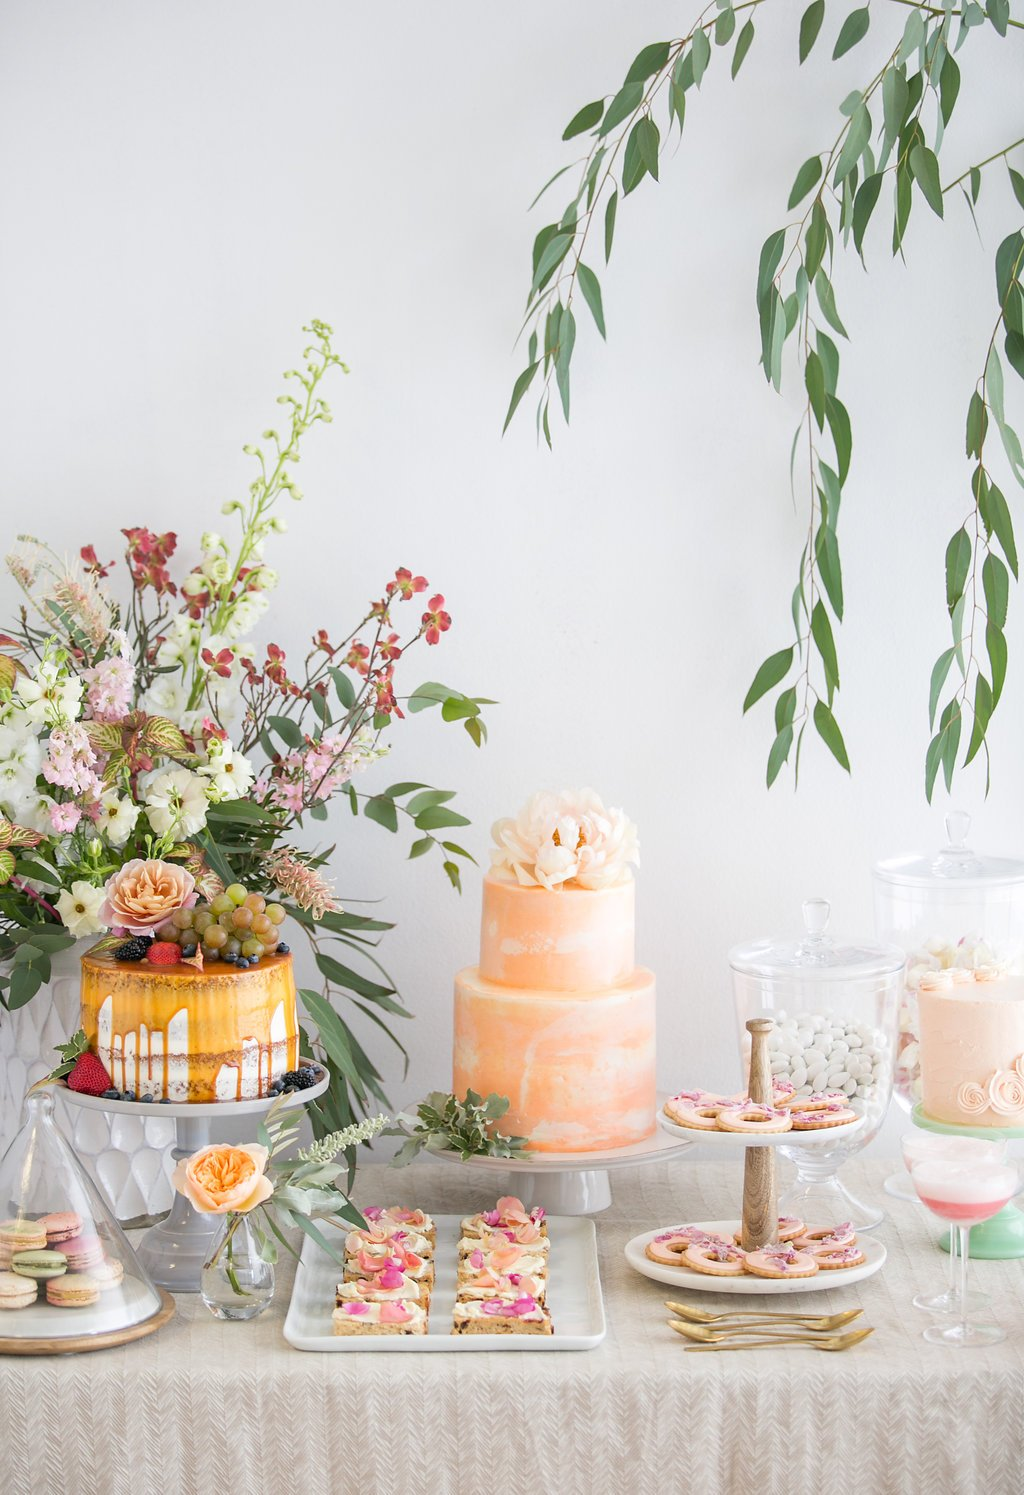 dessert ideas for bridal shower table